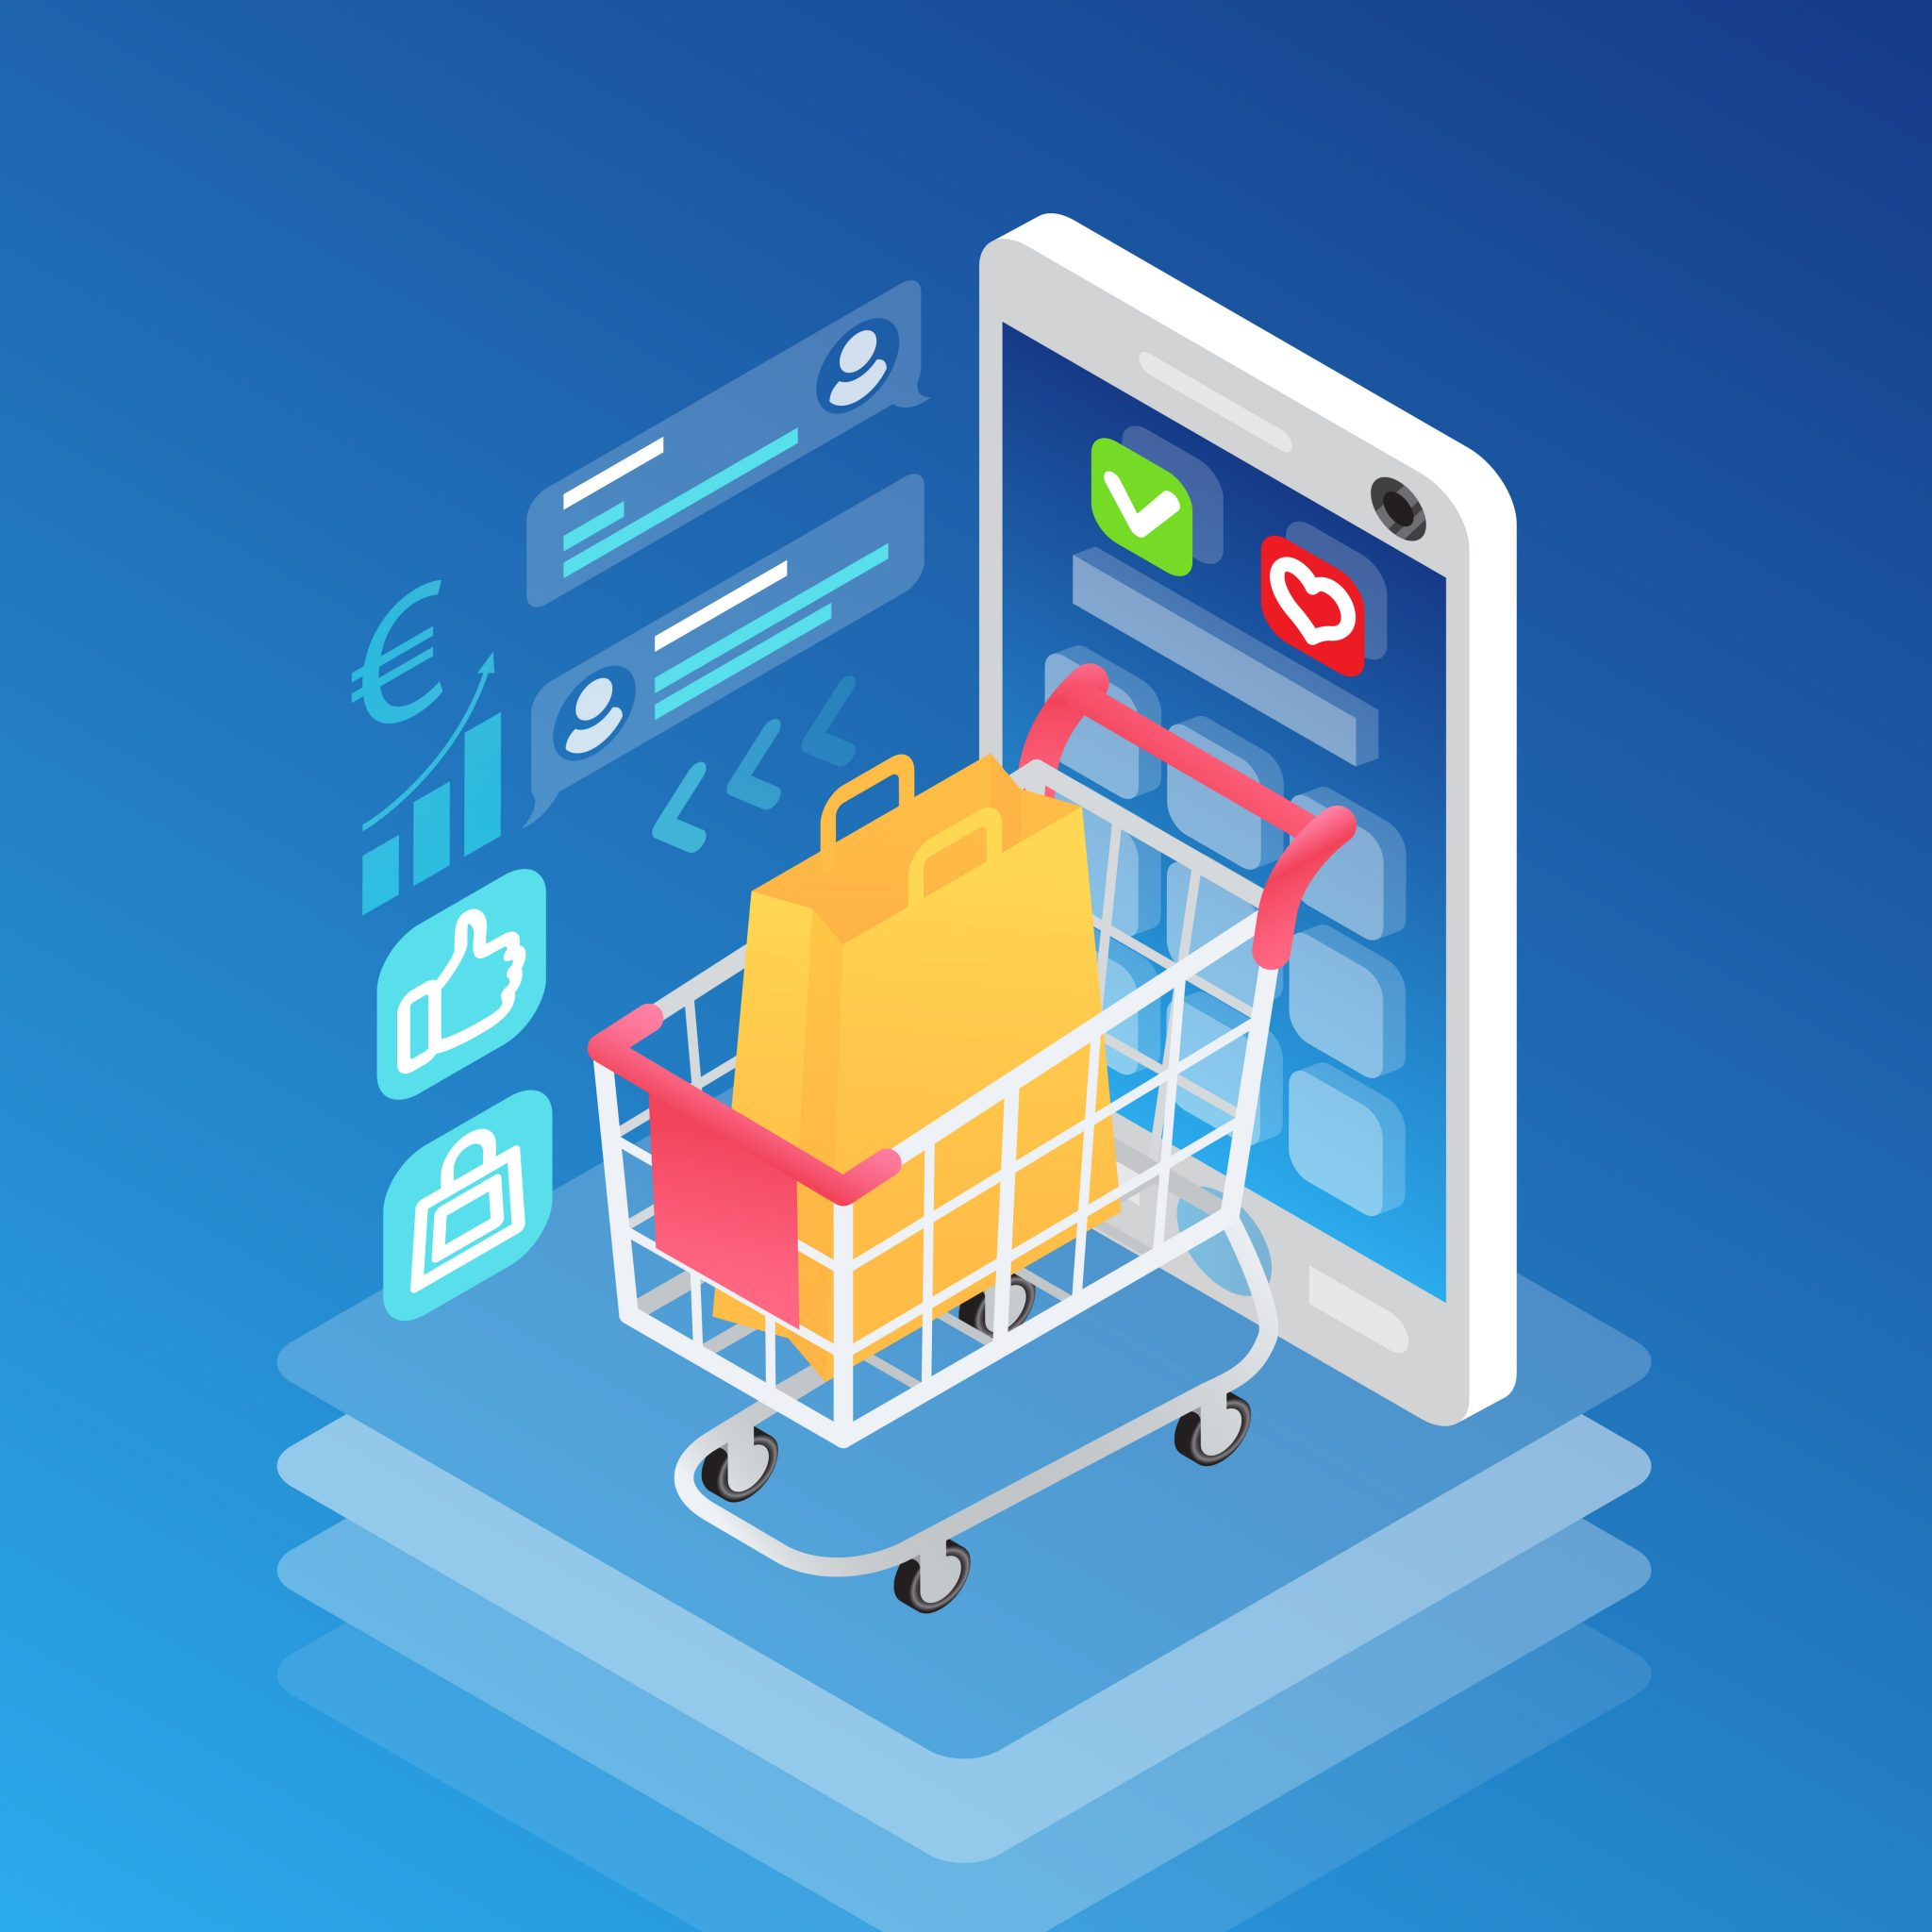 Mobile app ideas for retail